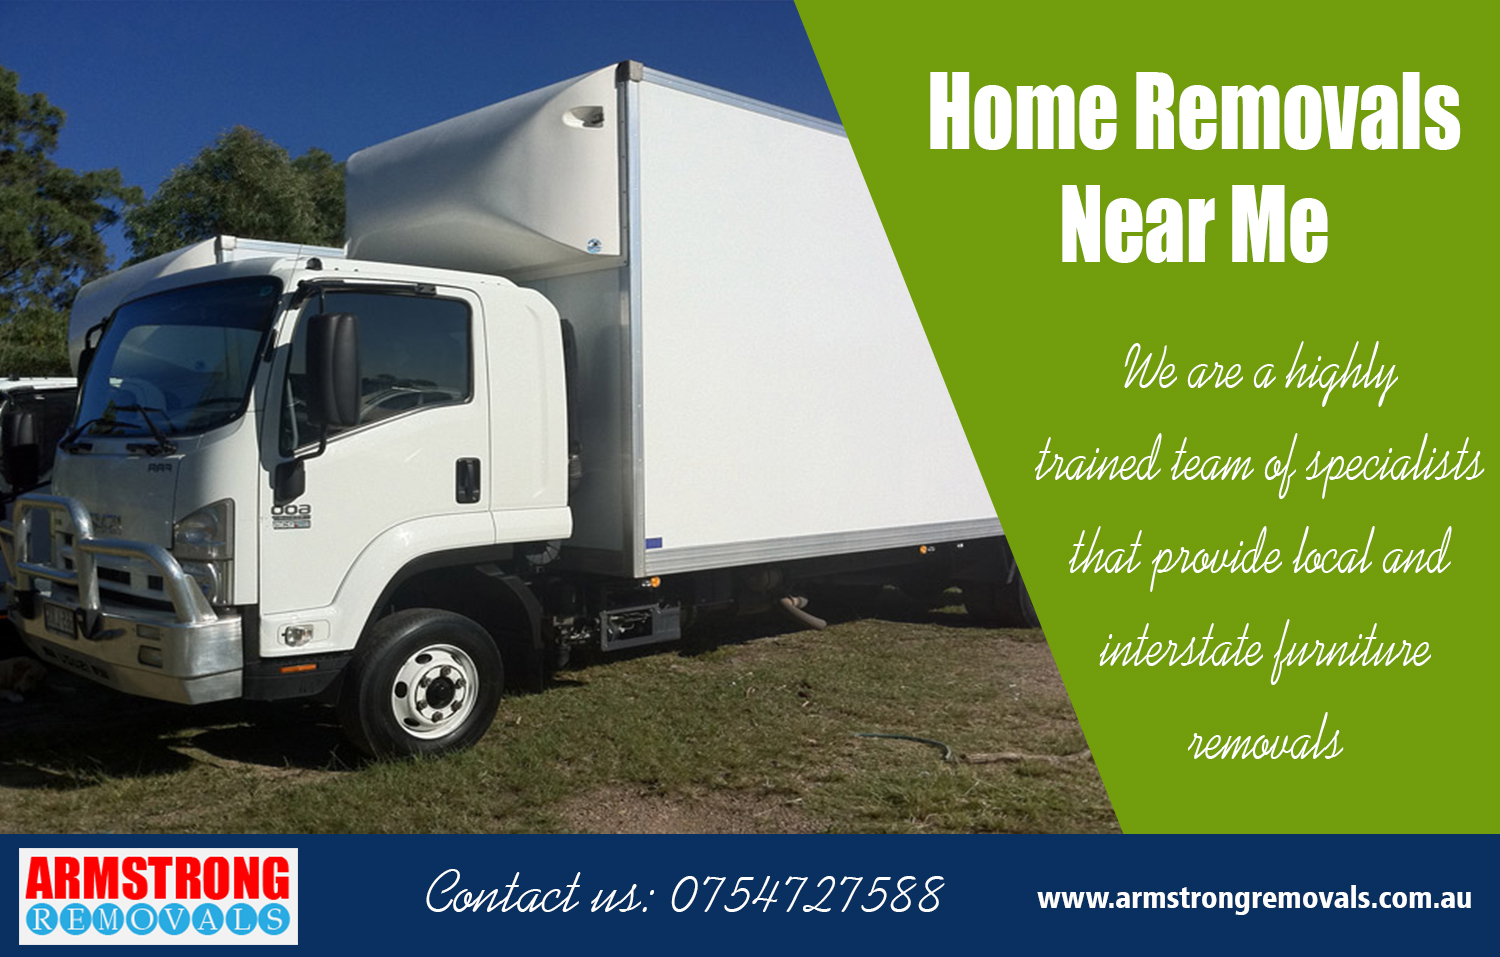 Home Removals Near Me